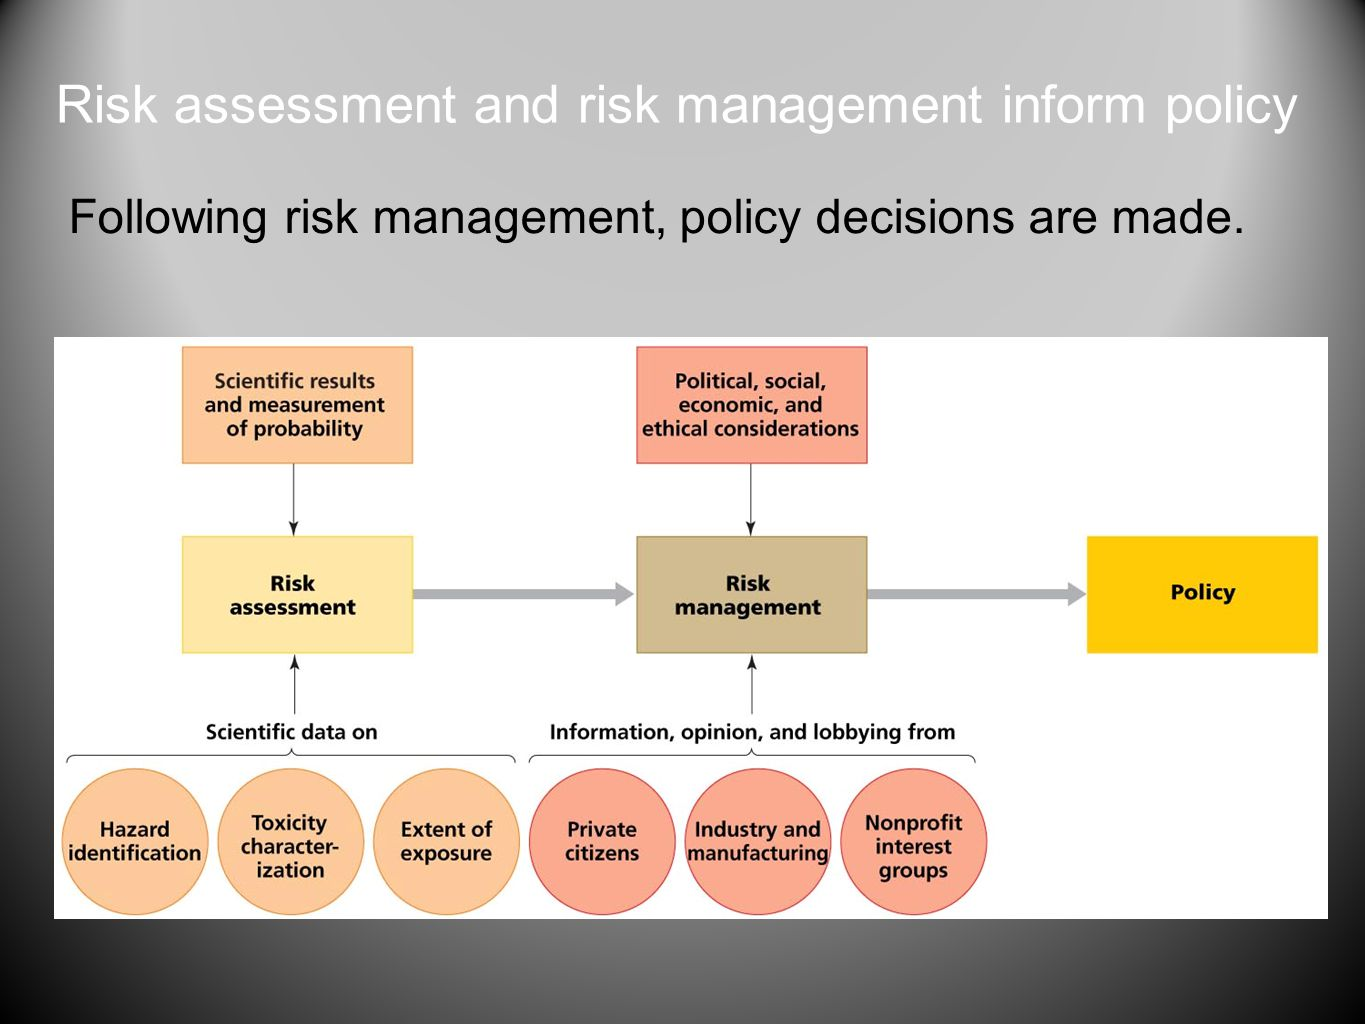 Risk assessment and risk management inform policy